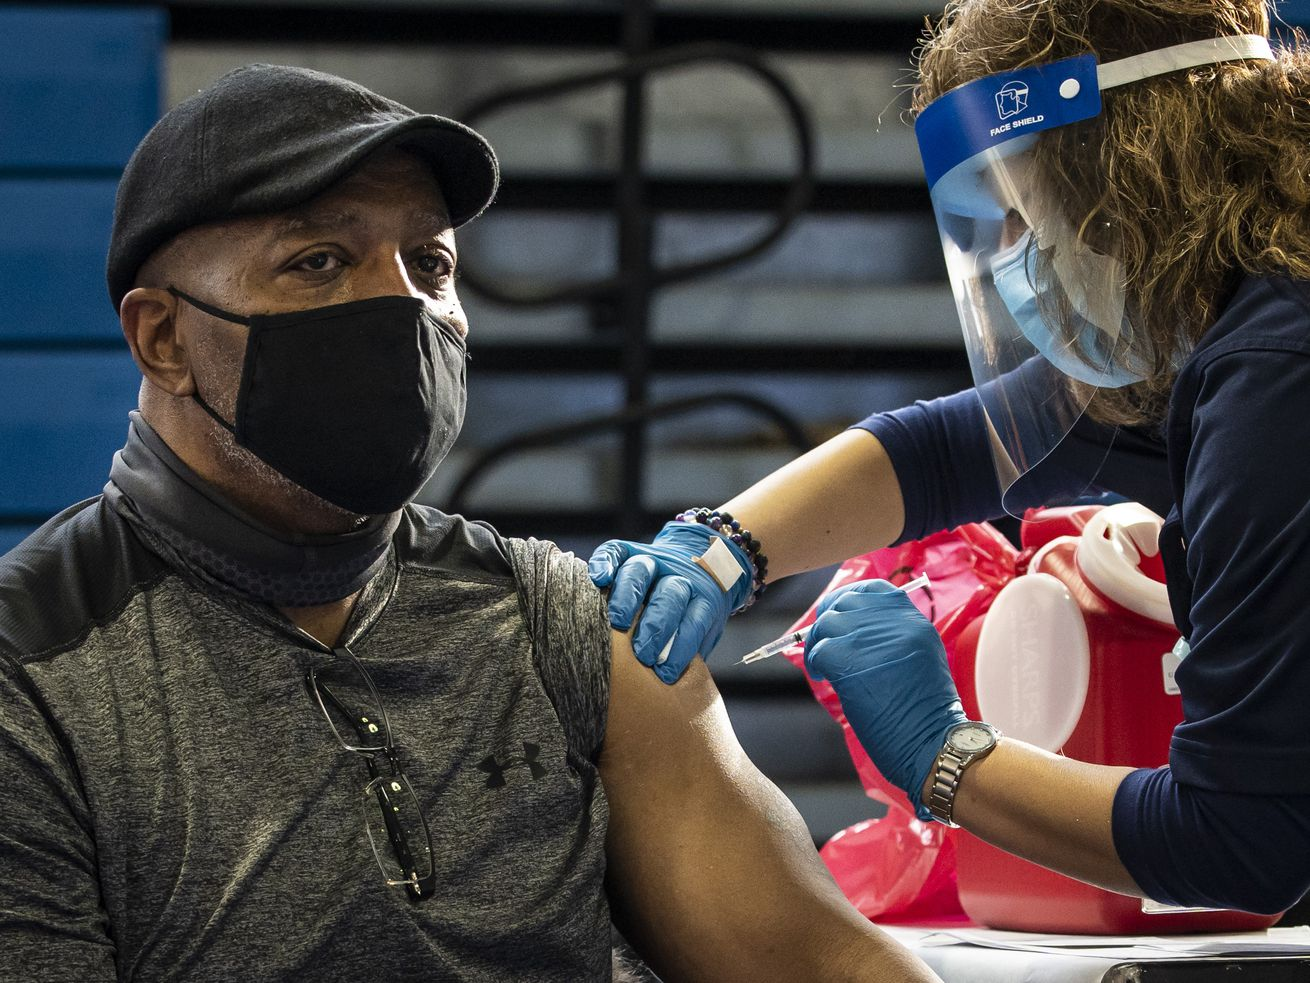 Officials are urging more residents to roll up their sleeves and get the vaccine.